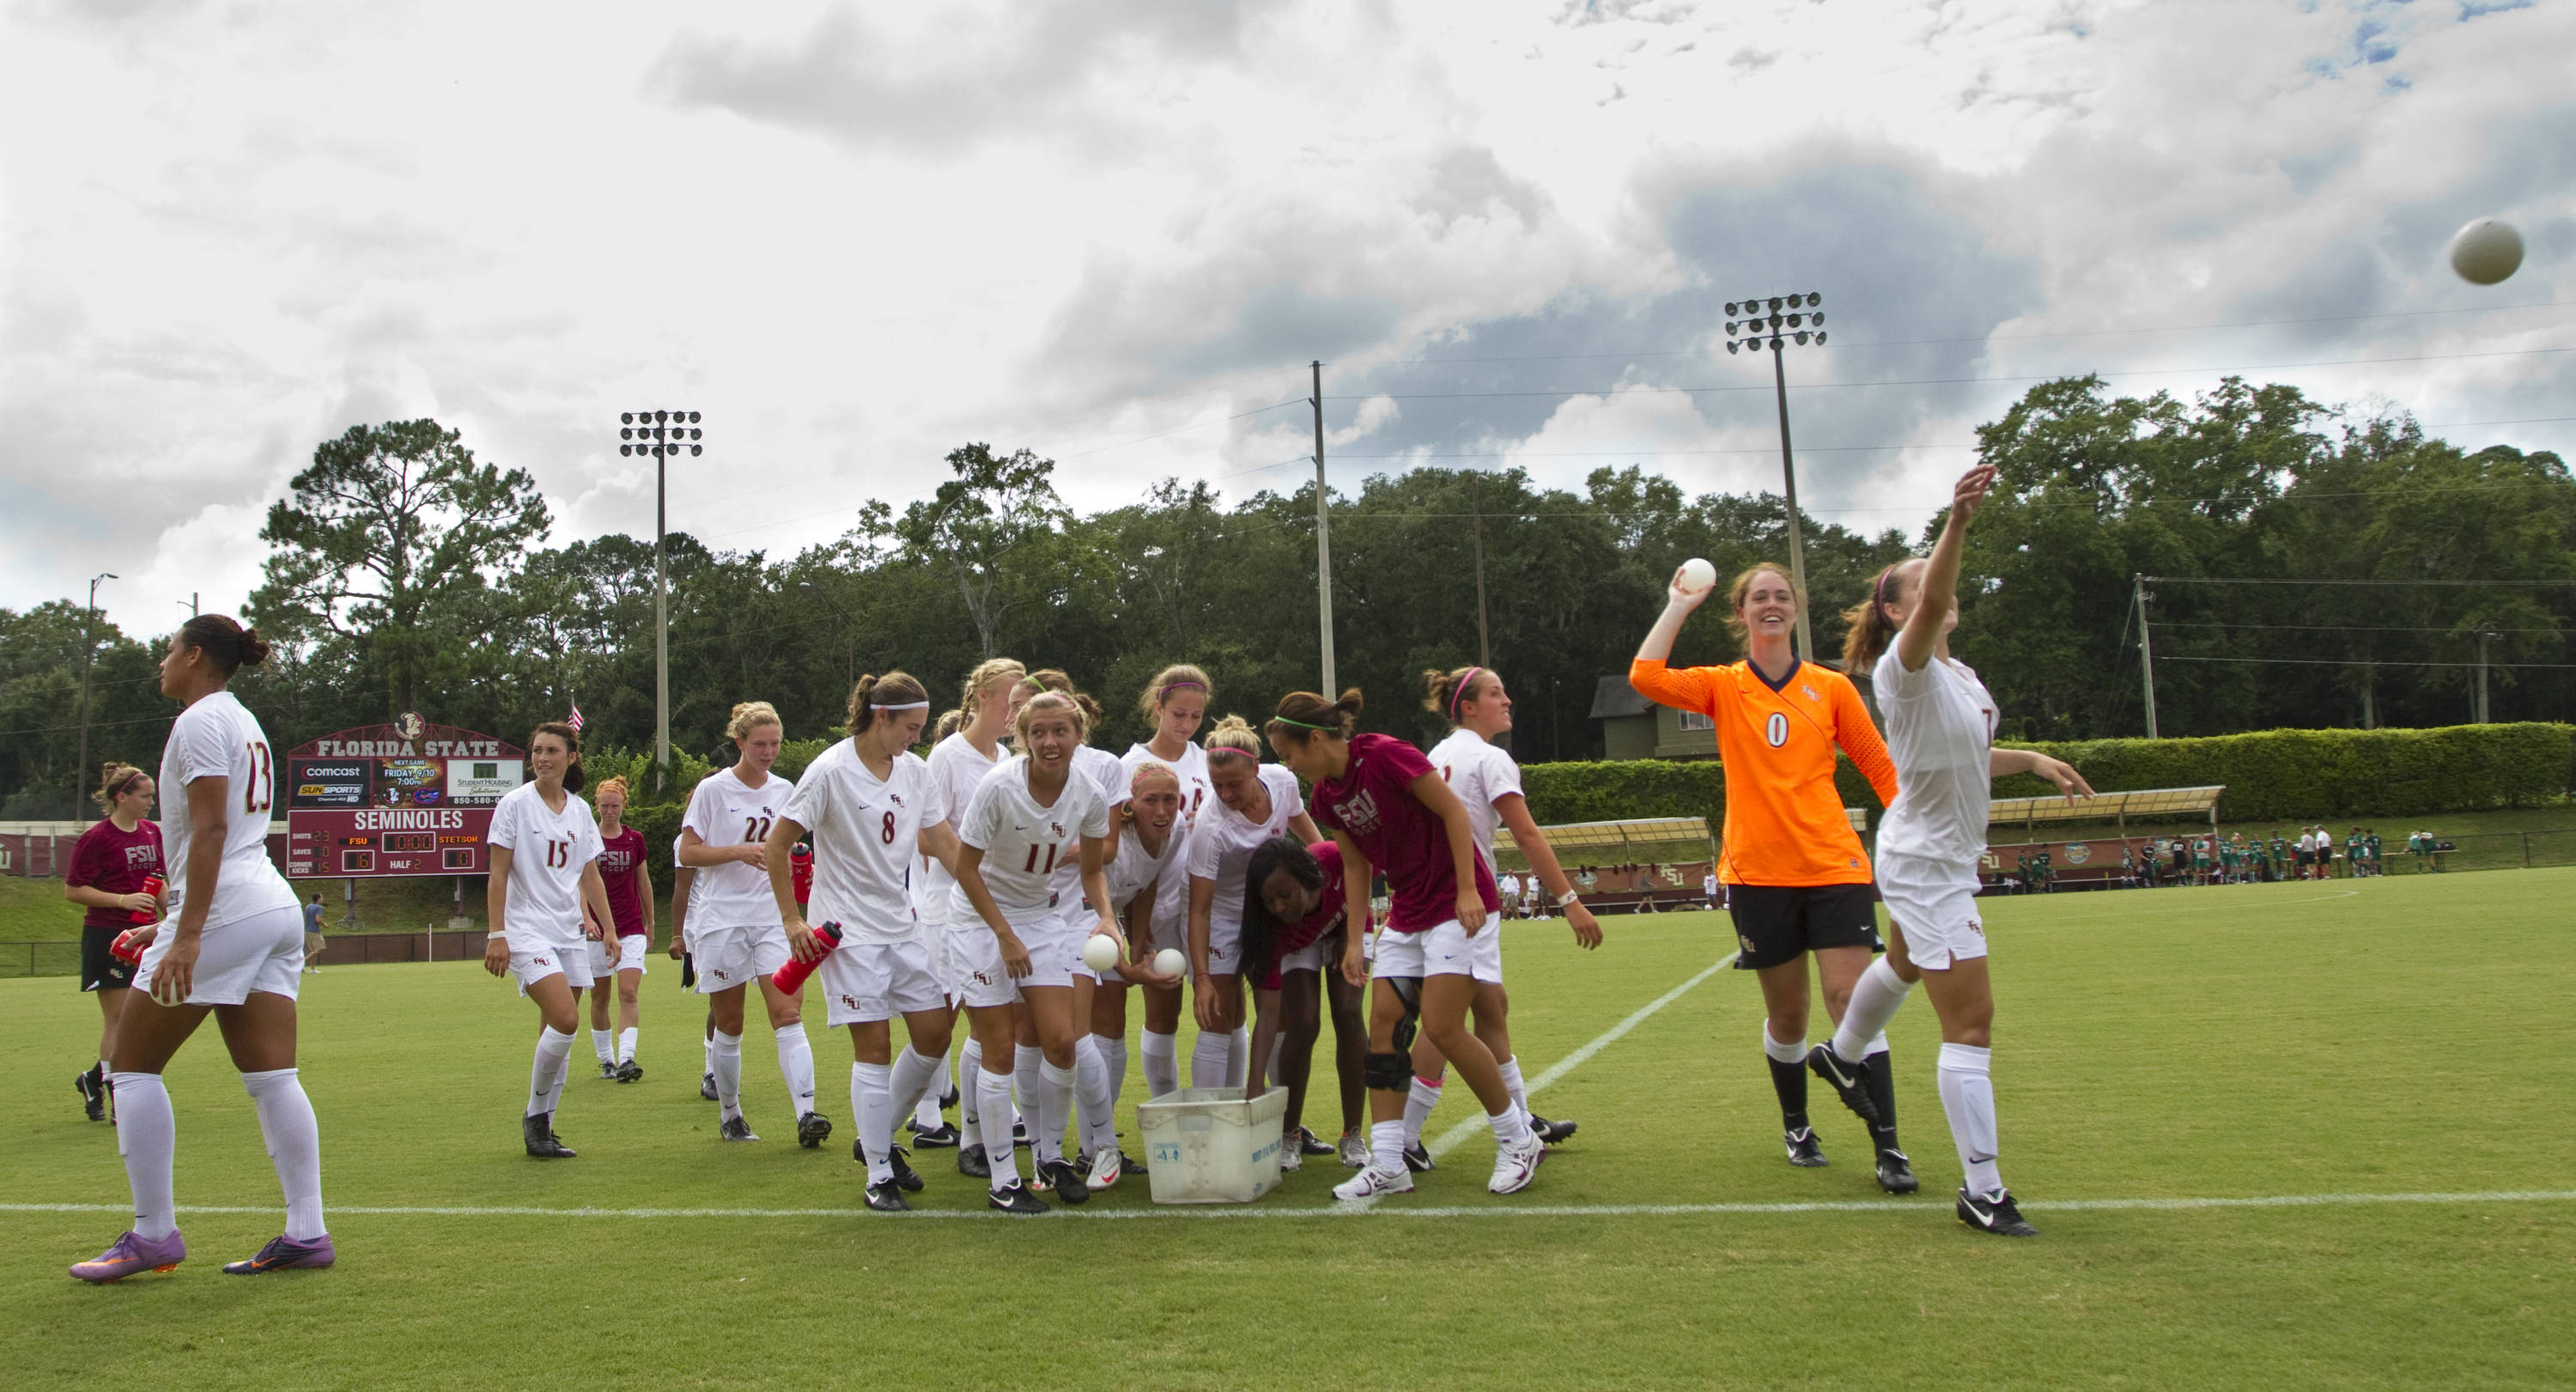 The team tosses mini-soccer balls at fans after the win against Stetson.